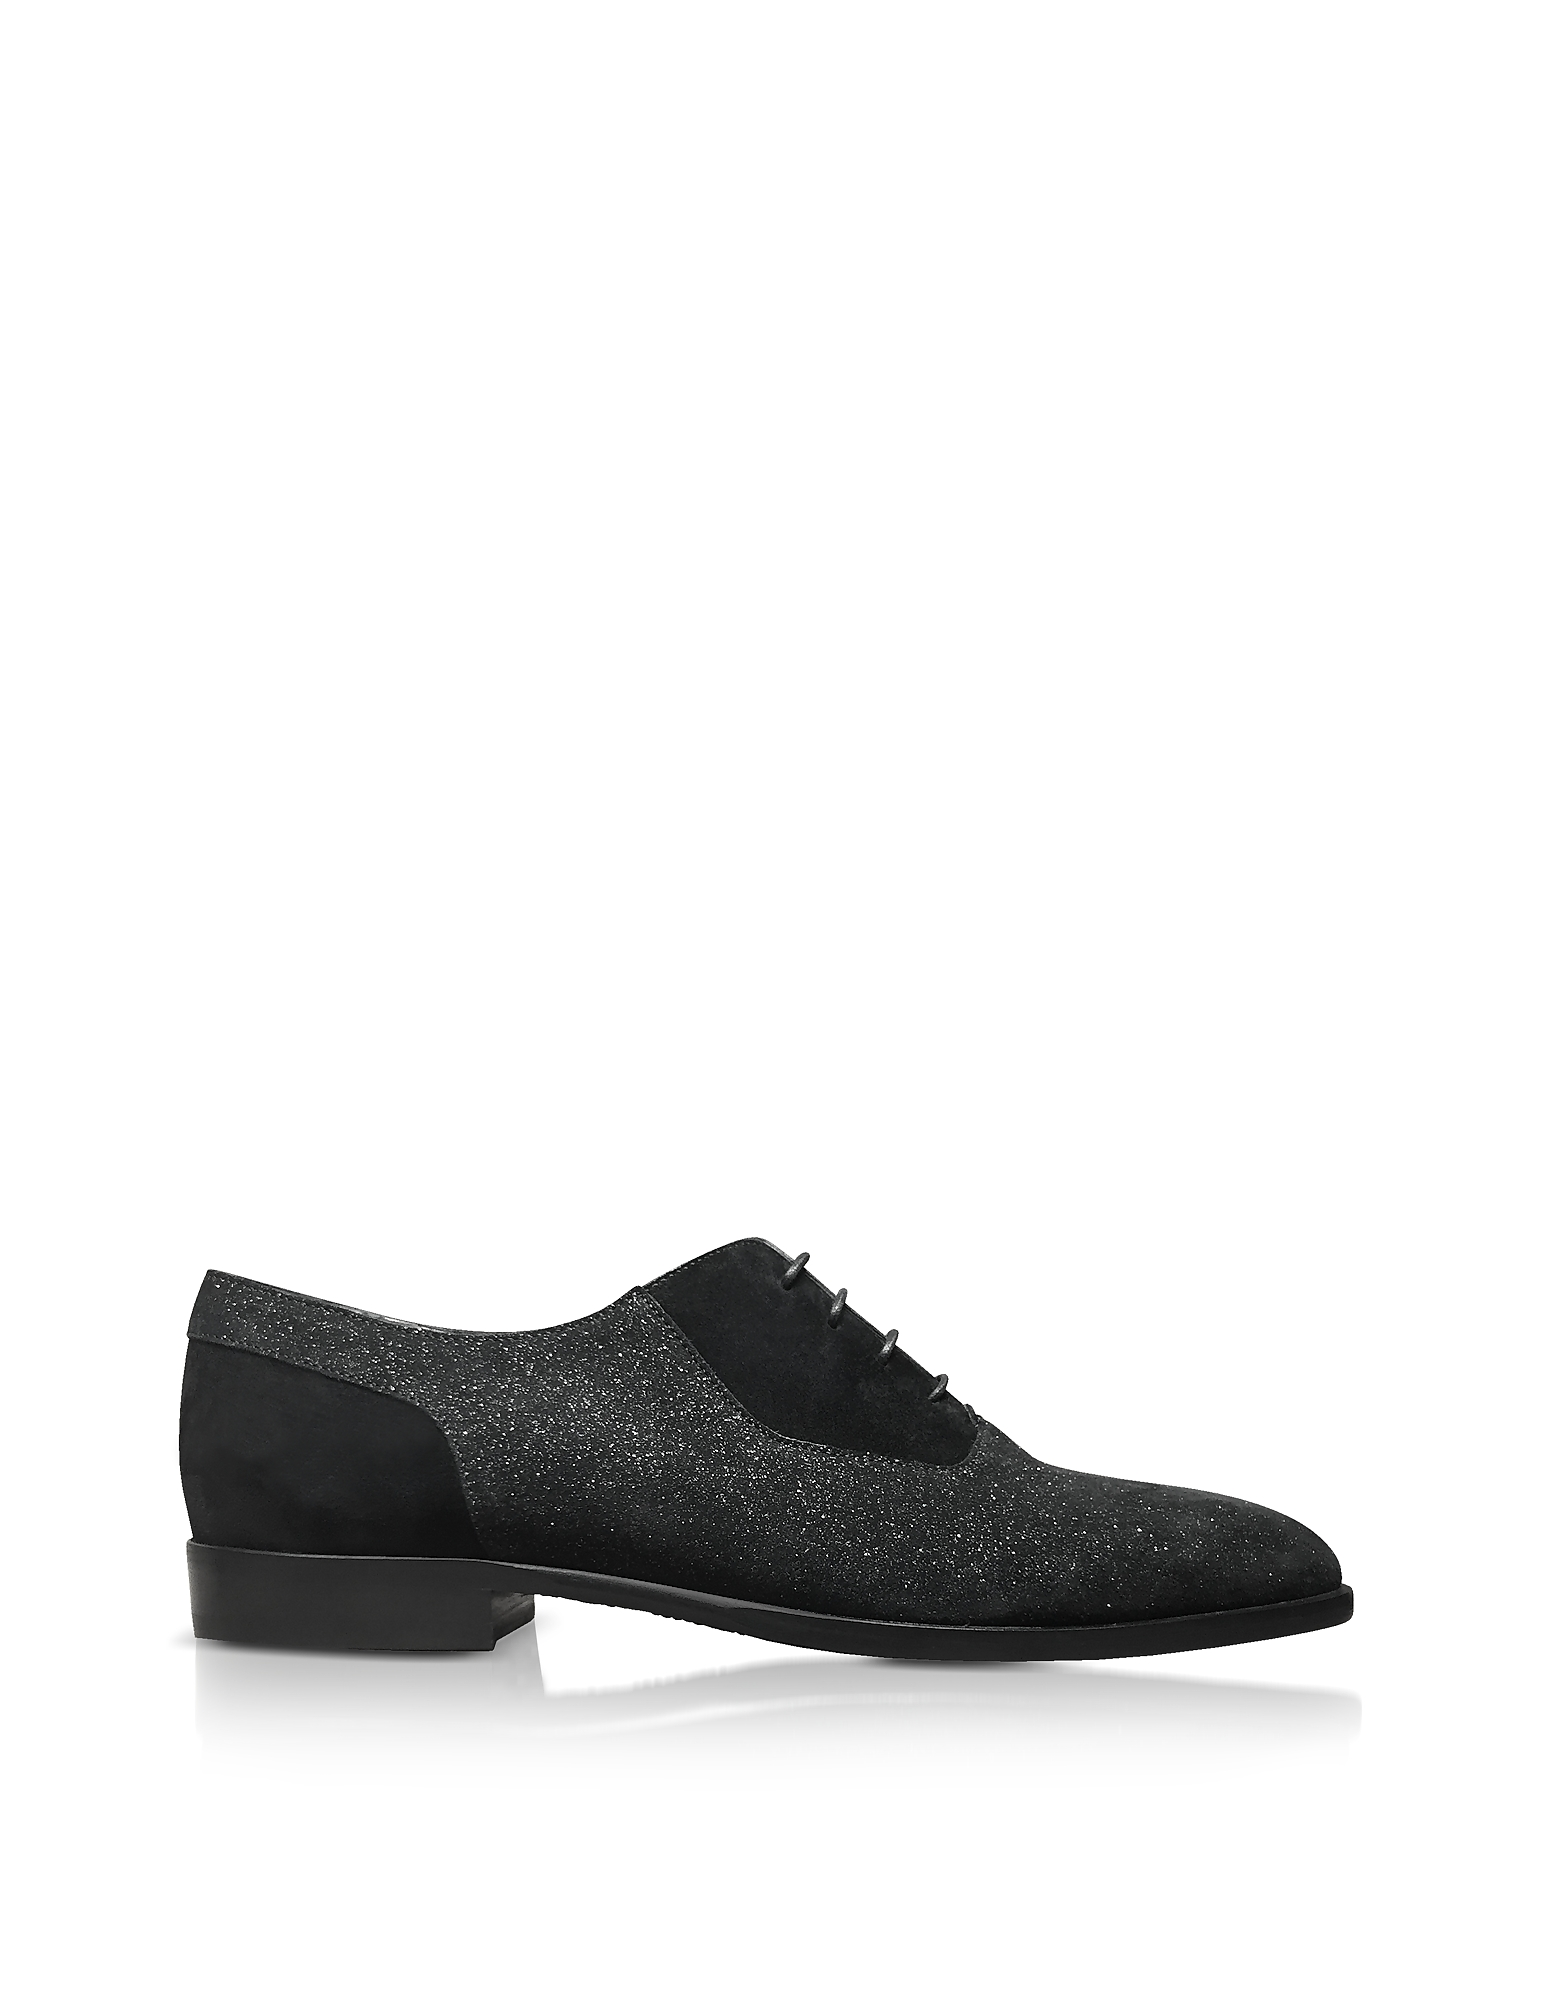 Jimmy Choo Shoes, Tyler Black Soft Glitter Suede Lace Up Shoes